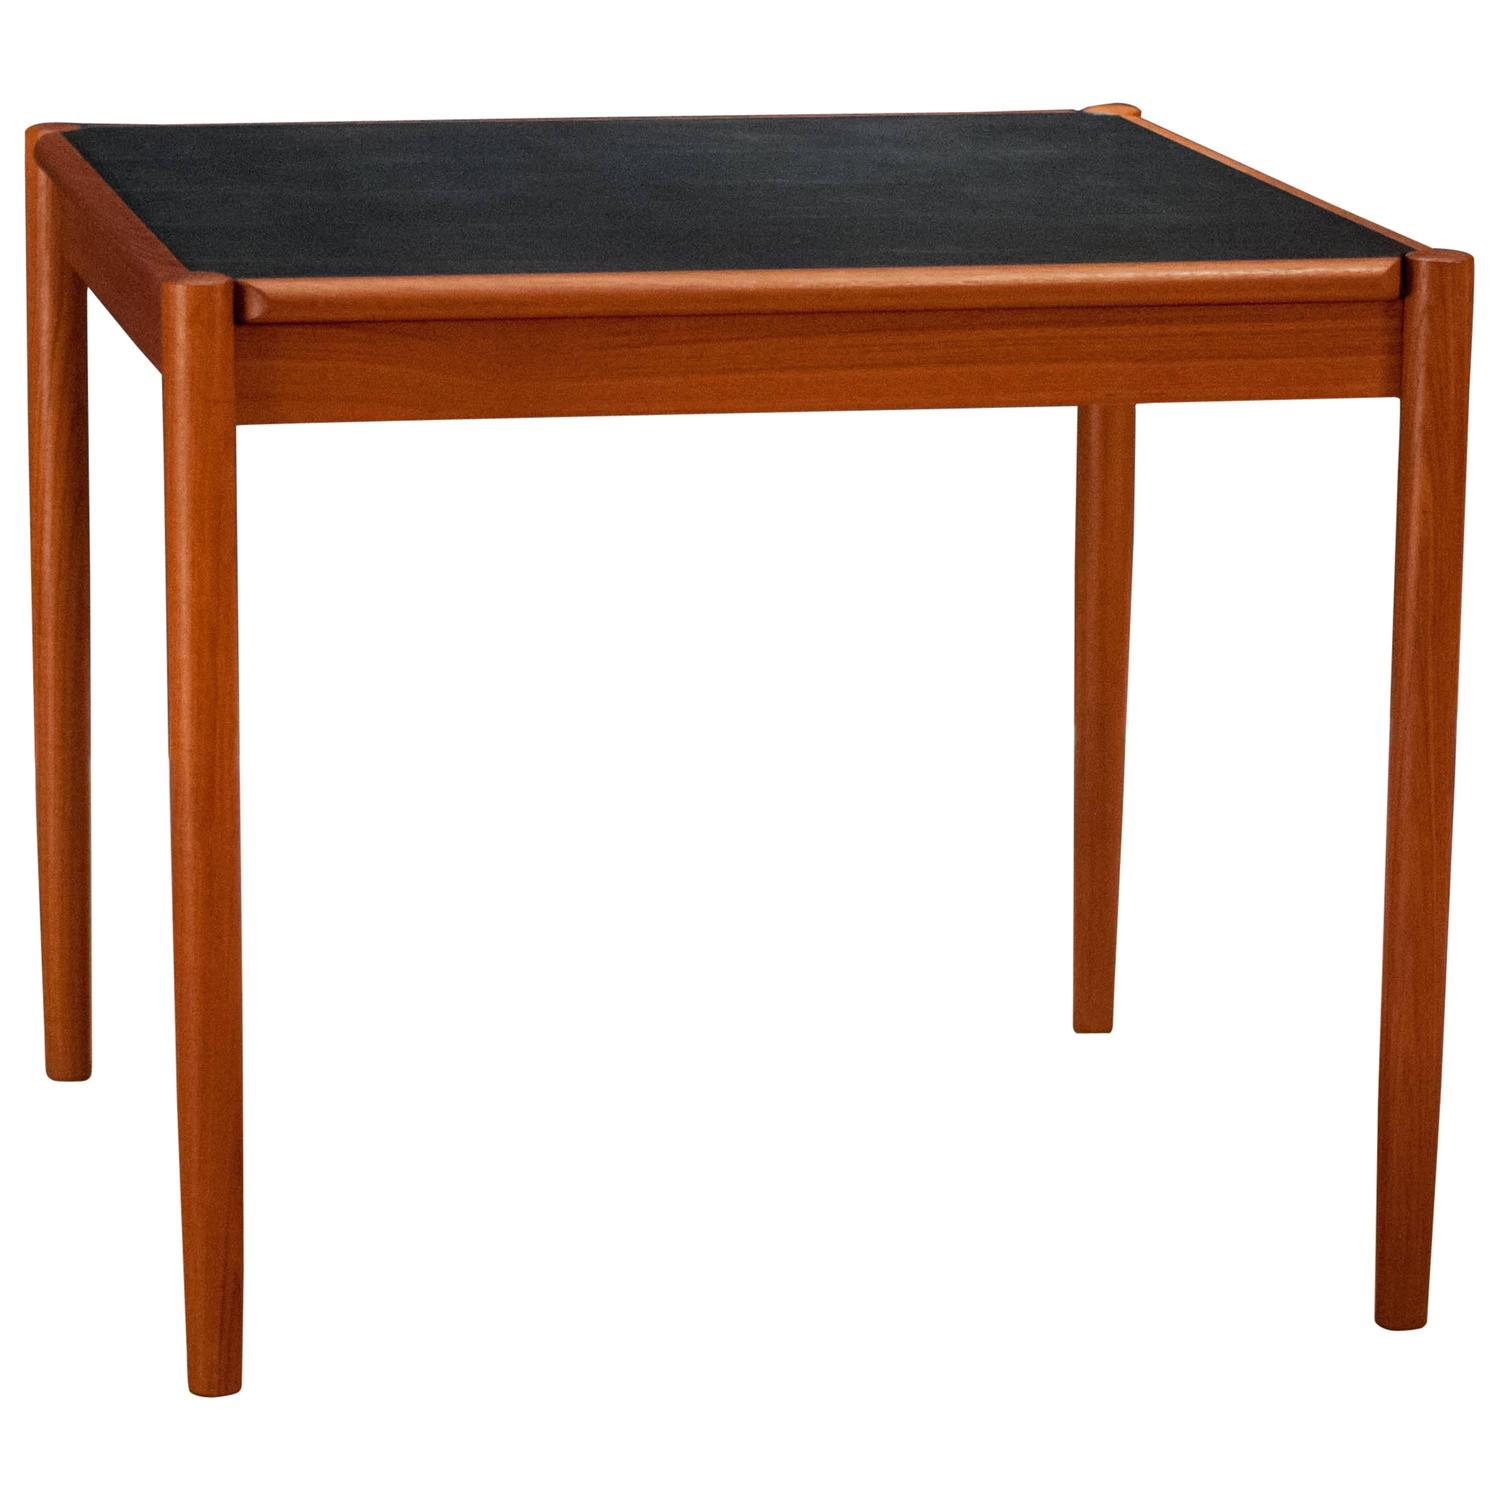 Danish Teak And Leather Flip Top Dining Table For Sale At 1stdibs